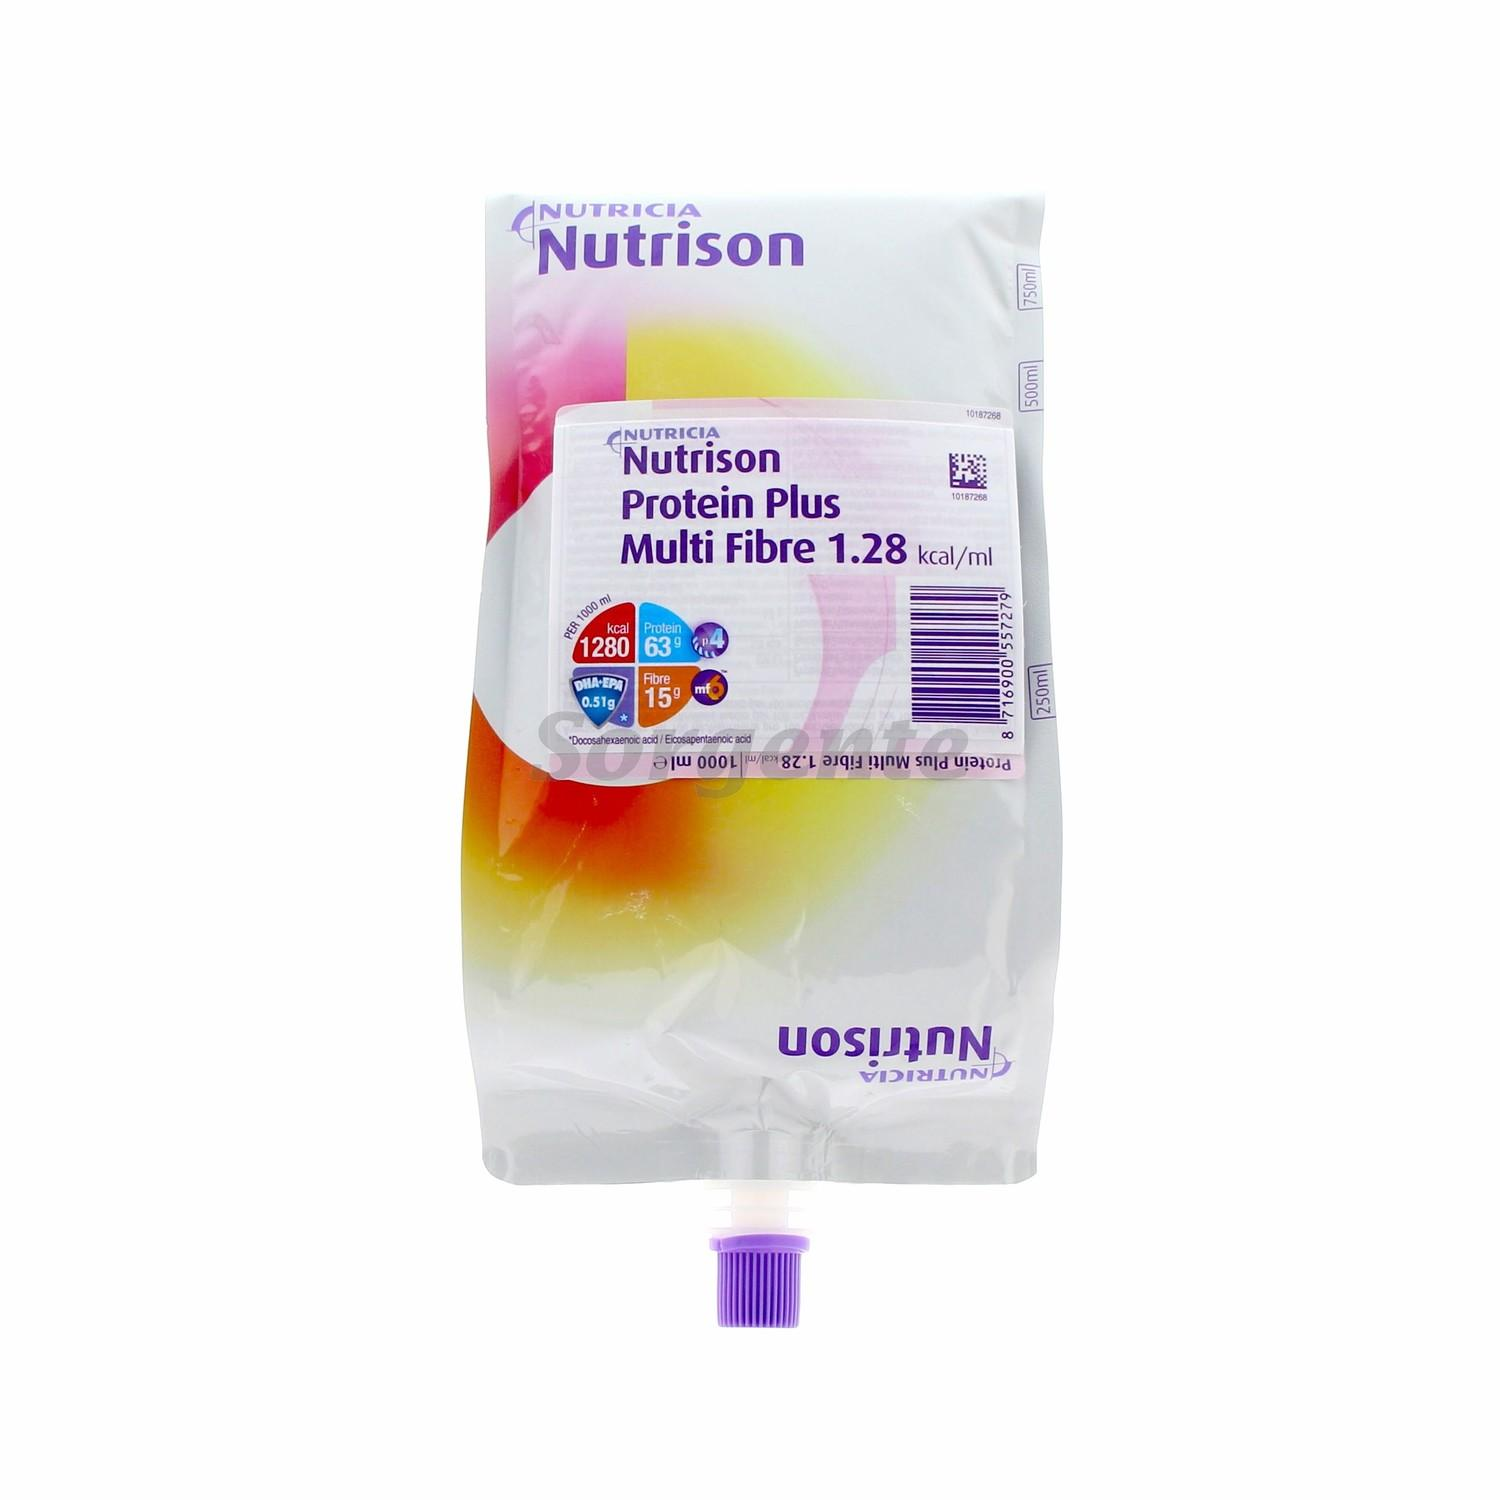 Nutrison Protein + MultiFiber 1000mL Bag, Box 8